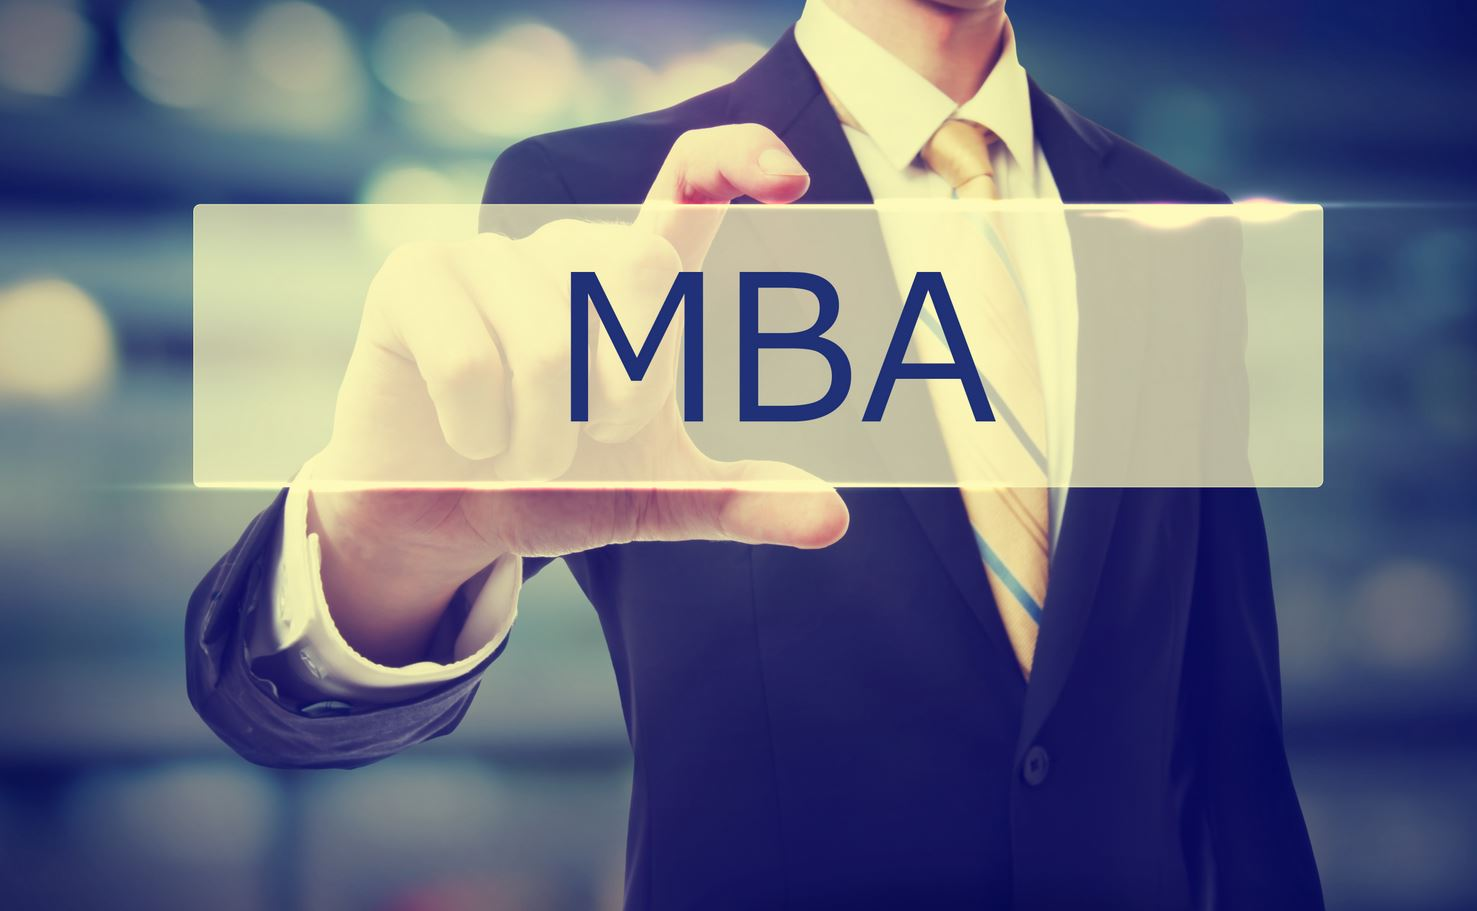 Why do you want to study MBA? - MBA Entrance Interview Q ...